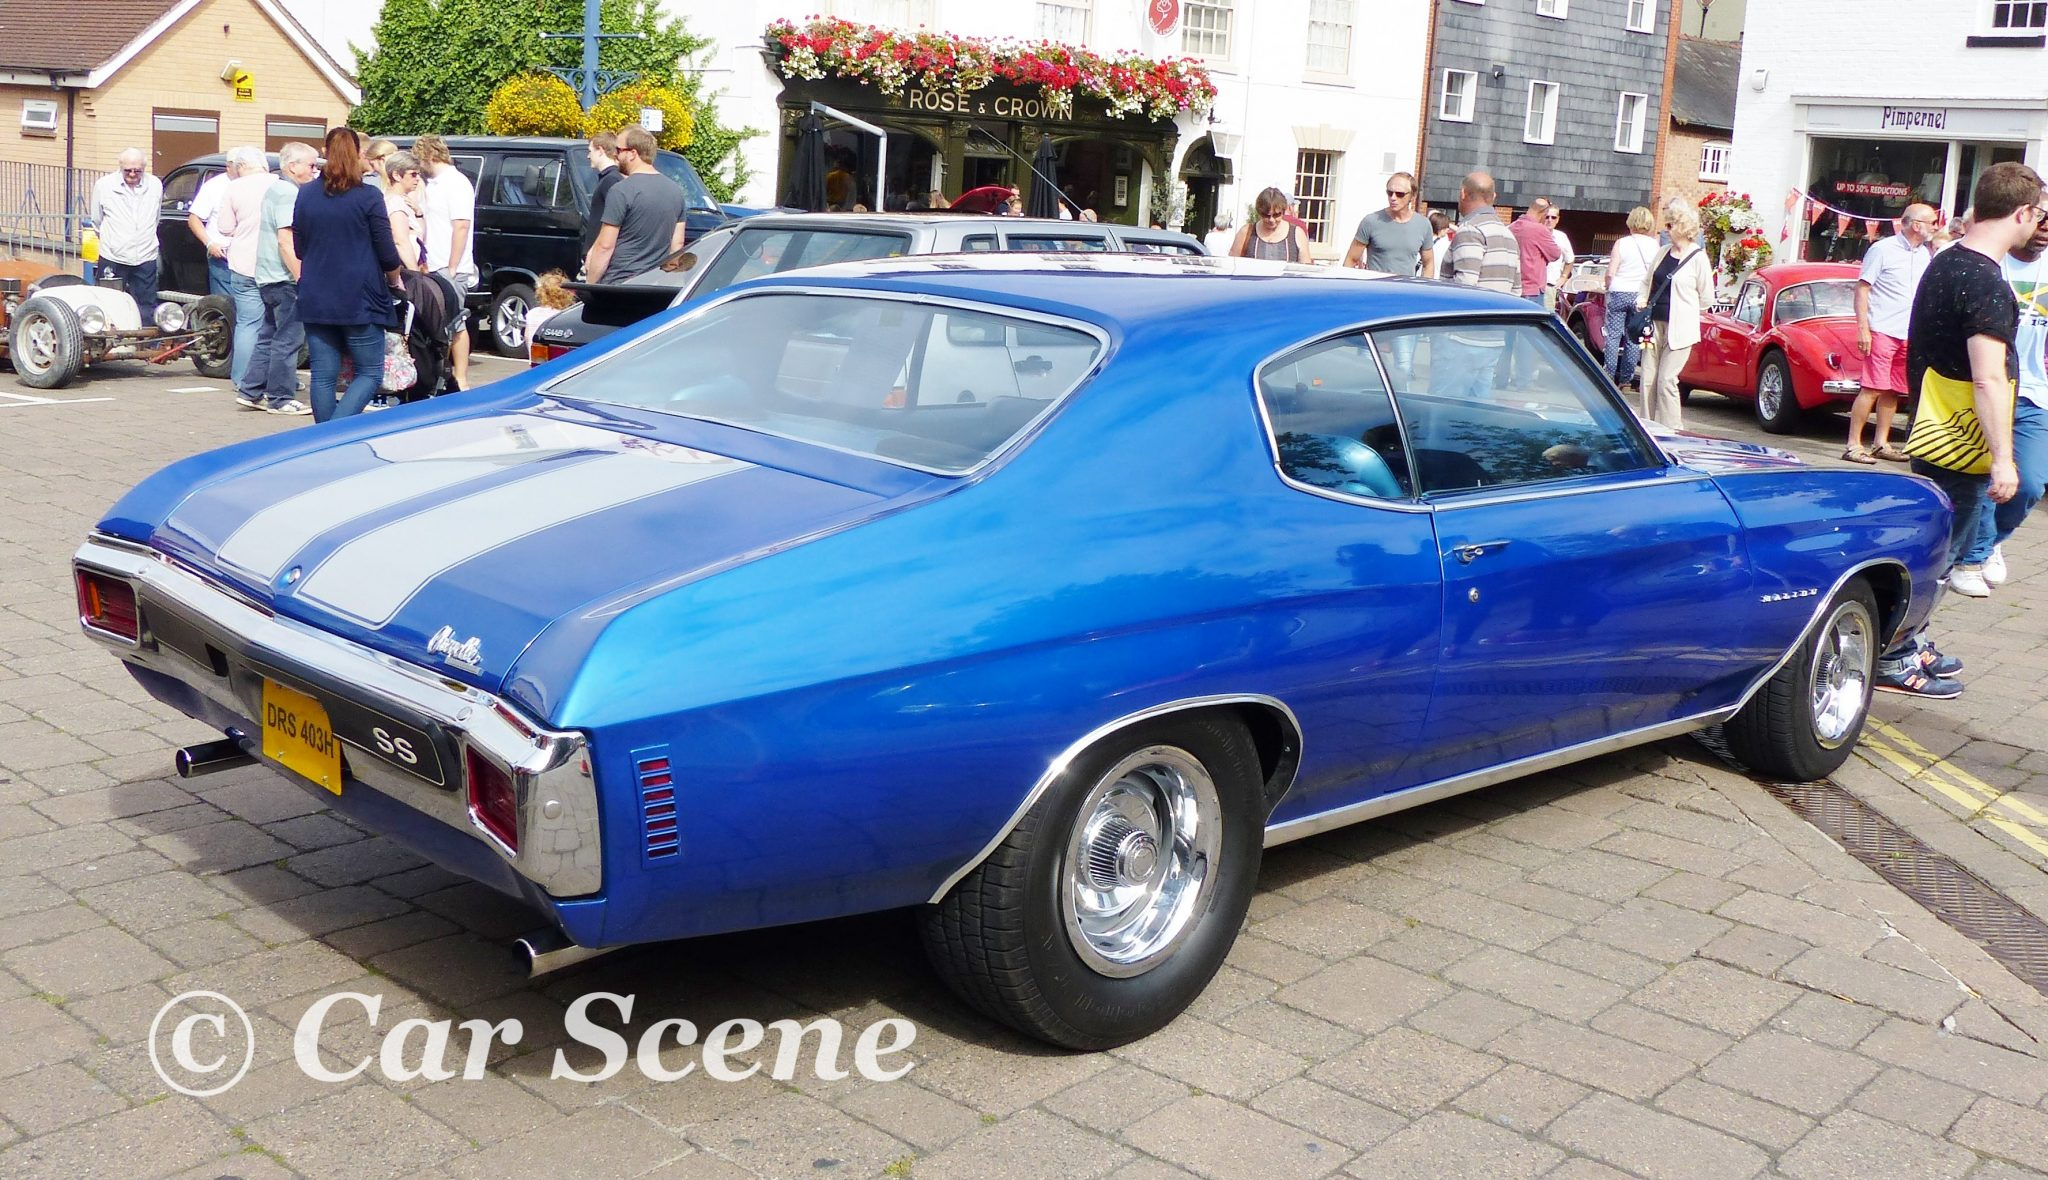 1969 Chevrolet Chevelle Malibu SS rear side view